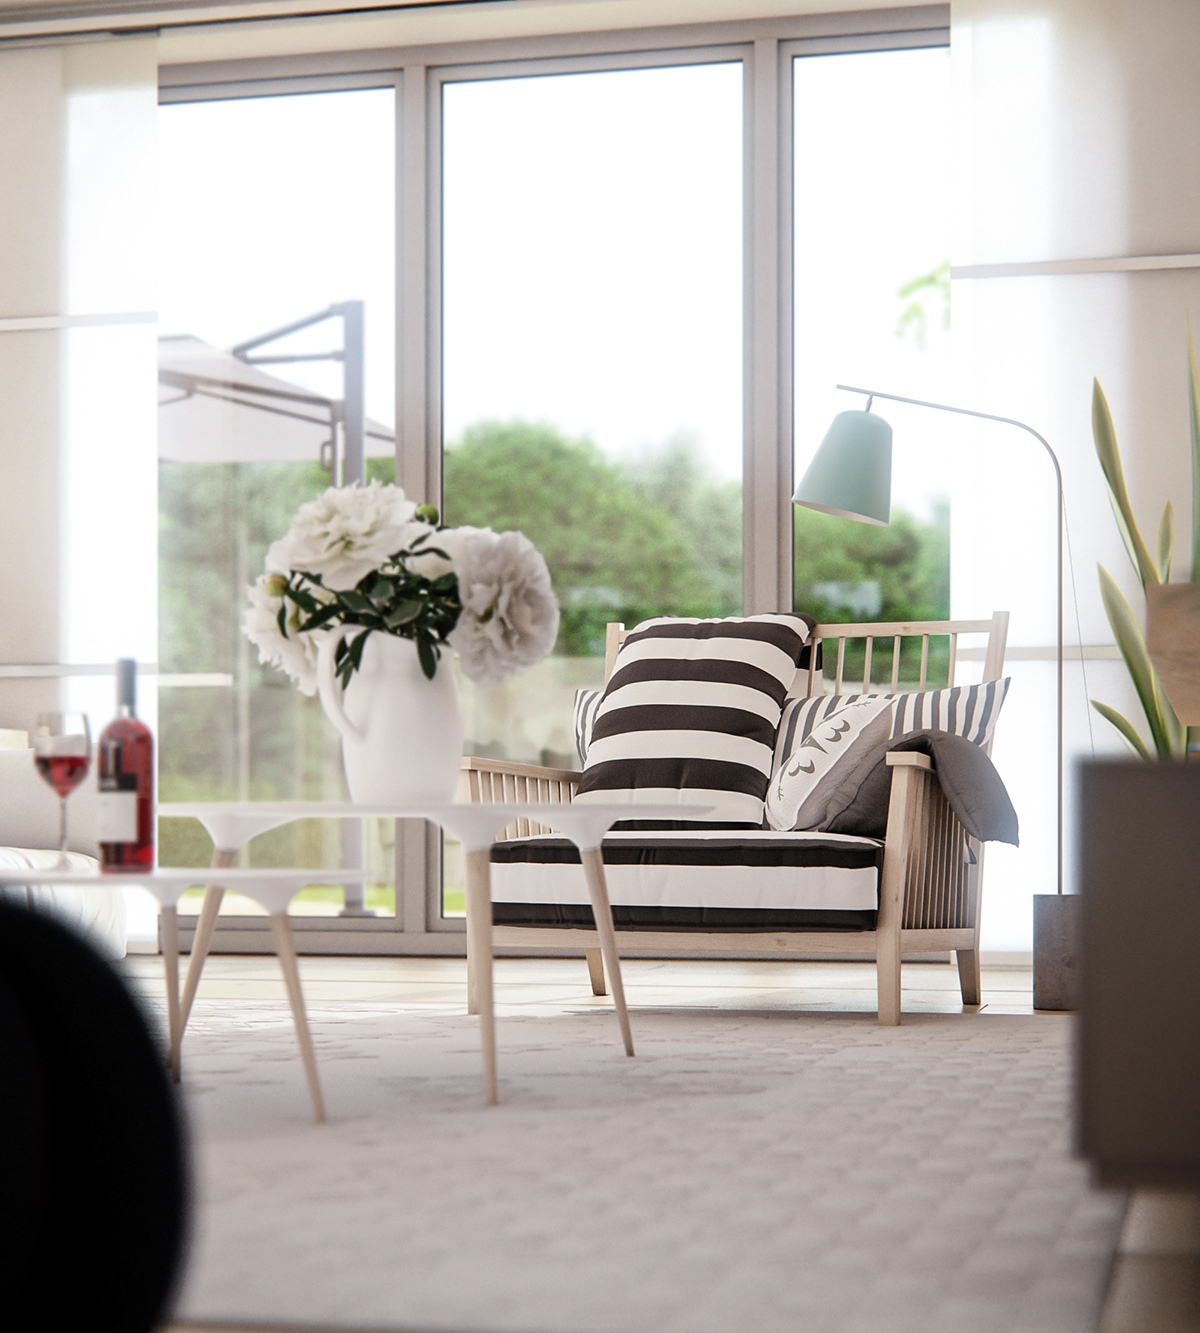 Scandinavian Home Design Looks So Charming With Eclectic: 3 Natural Interior Concepts With Floor-To-Ceiling Windows